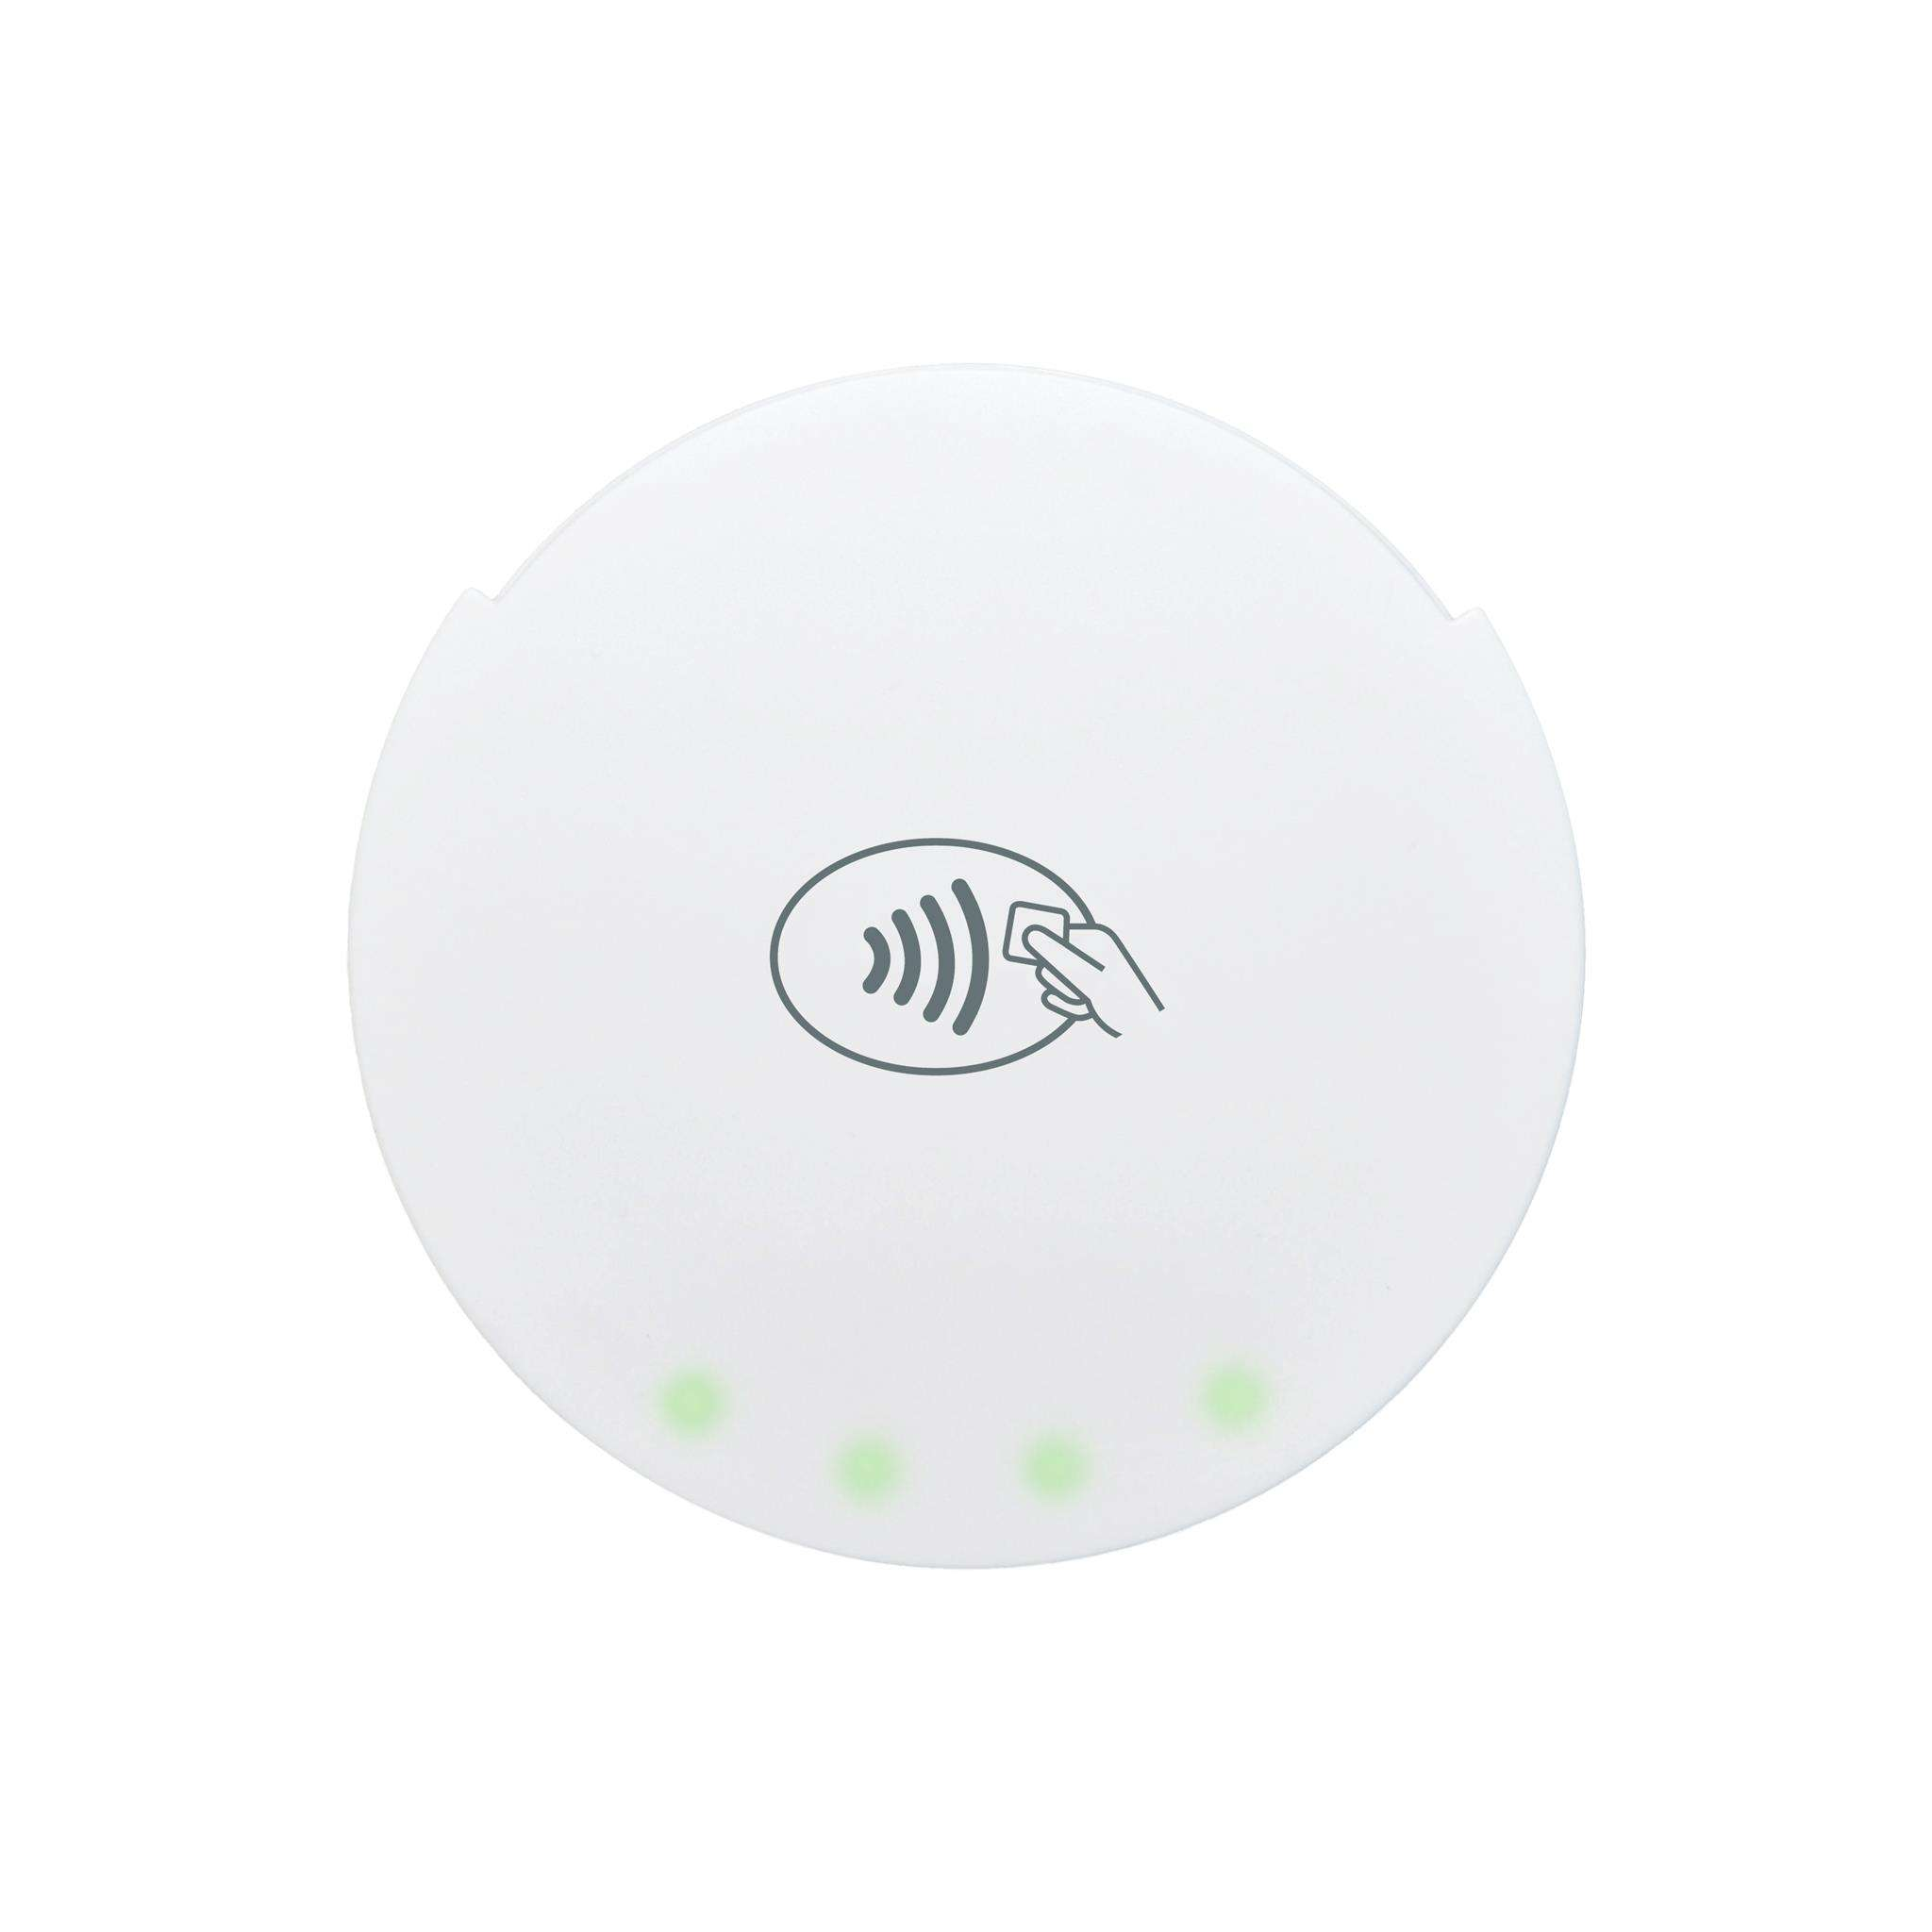 AMR220-C1Secure Wireless Bluetooth mPOS NFC Dual Interface Smart Card Reader for Mobile Payment